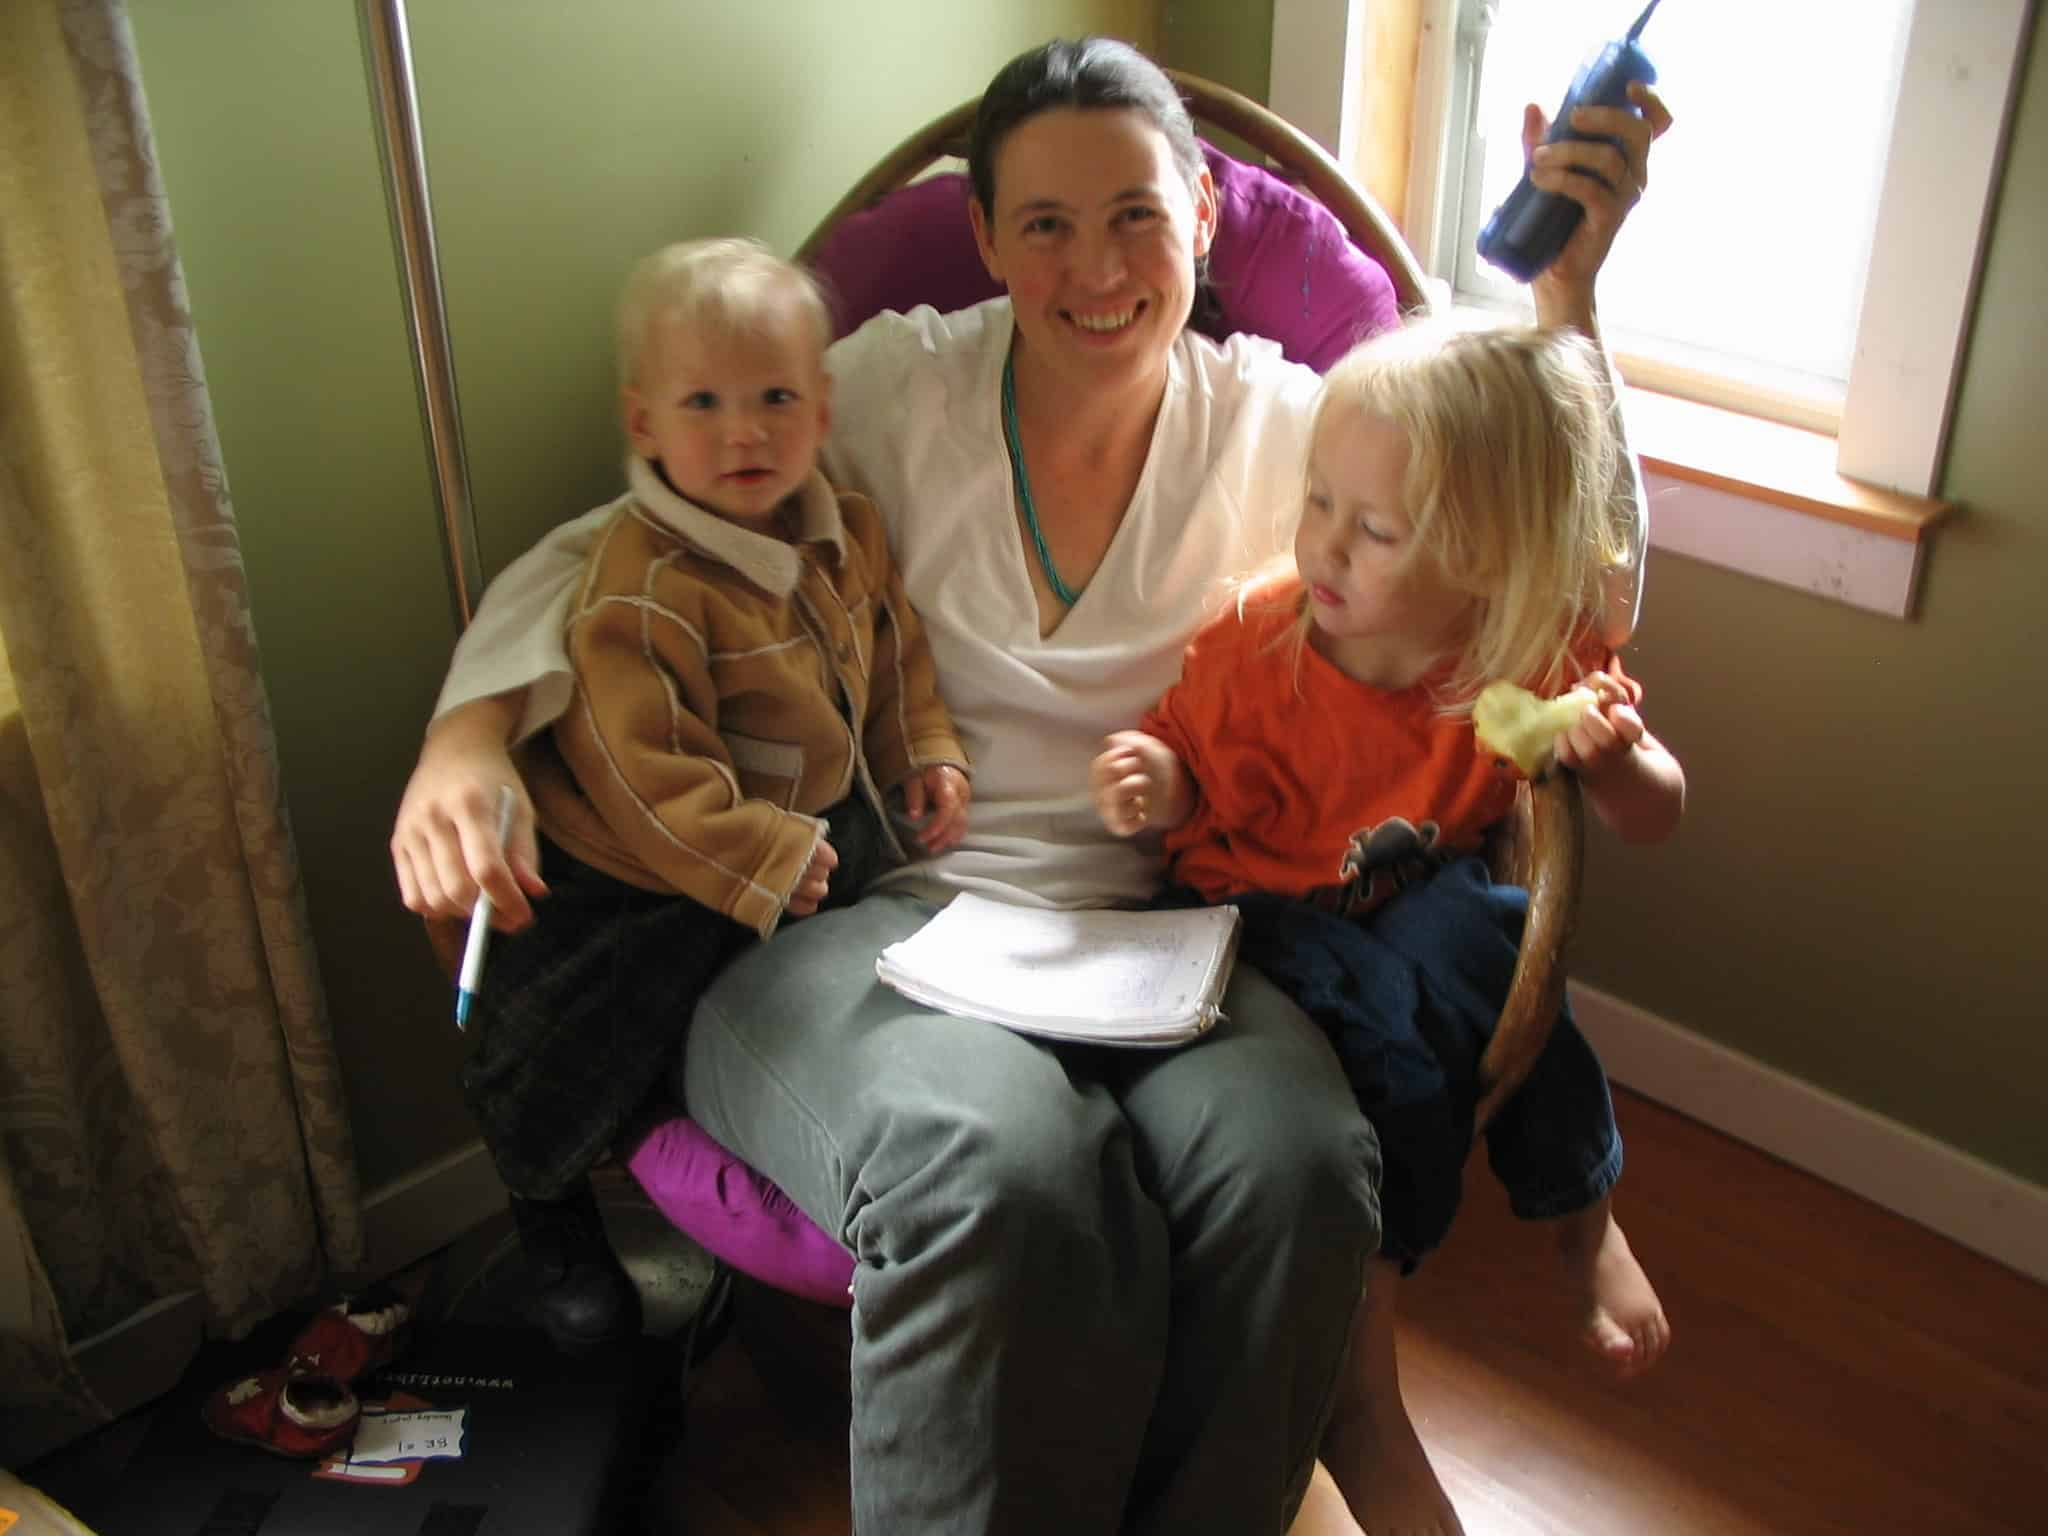 Here I am in 2005 managing my childbirth ed & doula practice with a massive phone, paper and pen. And 2 littles in my lap... Looking back on this photo now I think I'm look pretty awesome given my likely state of sleep deprivation.